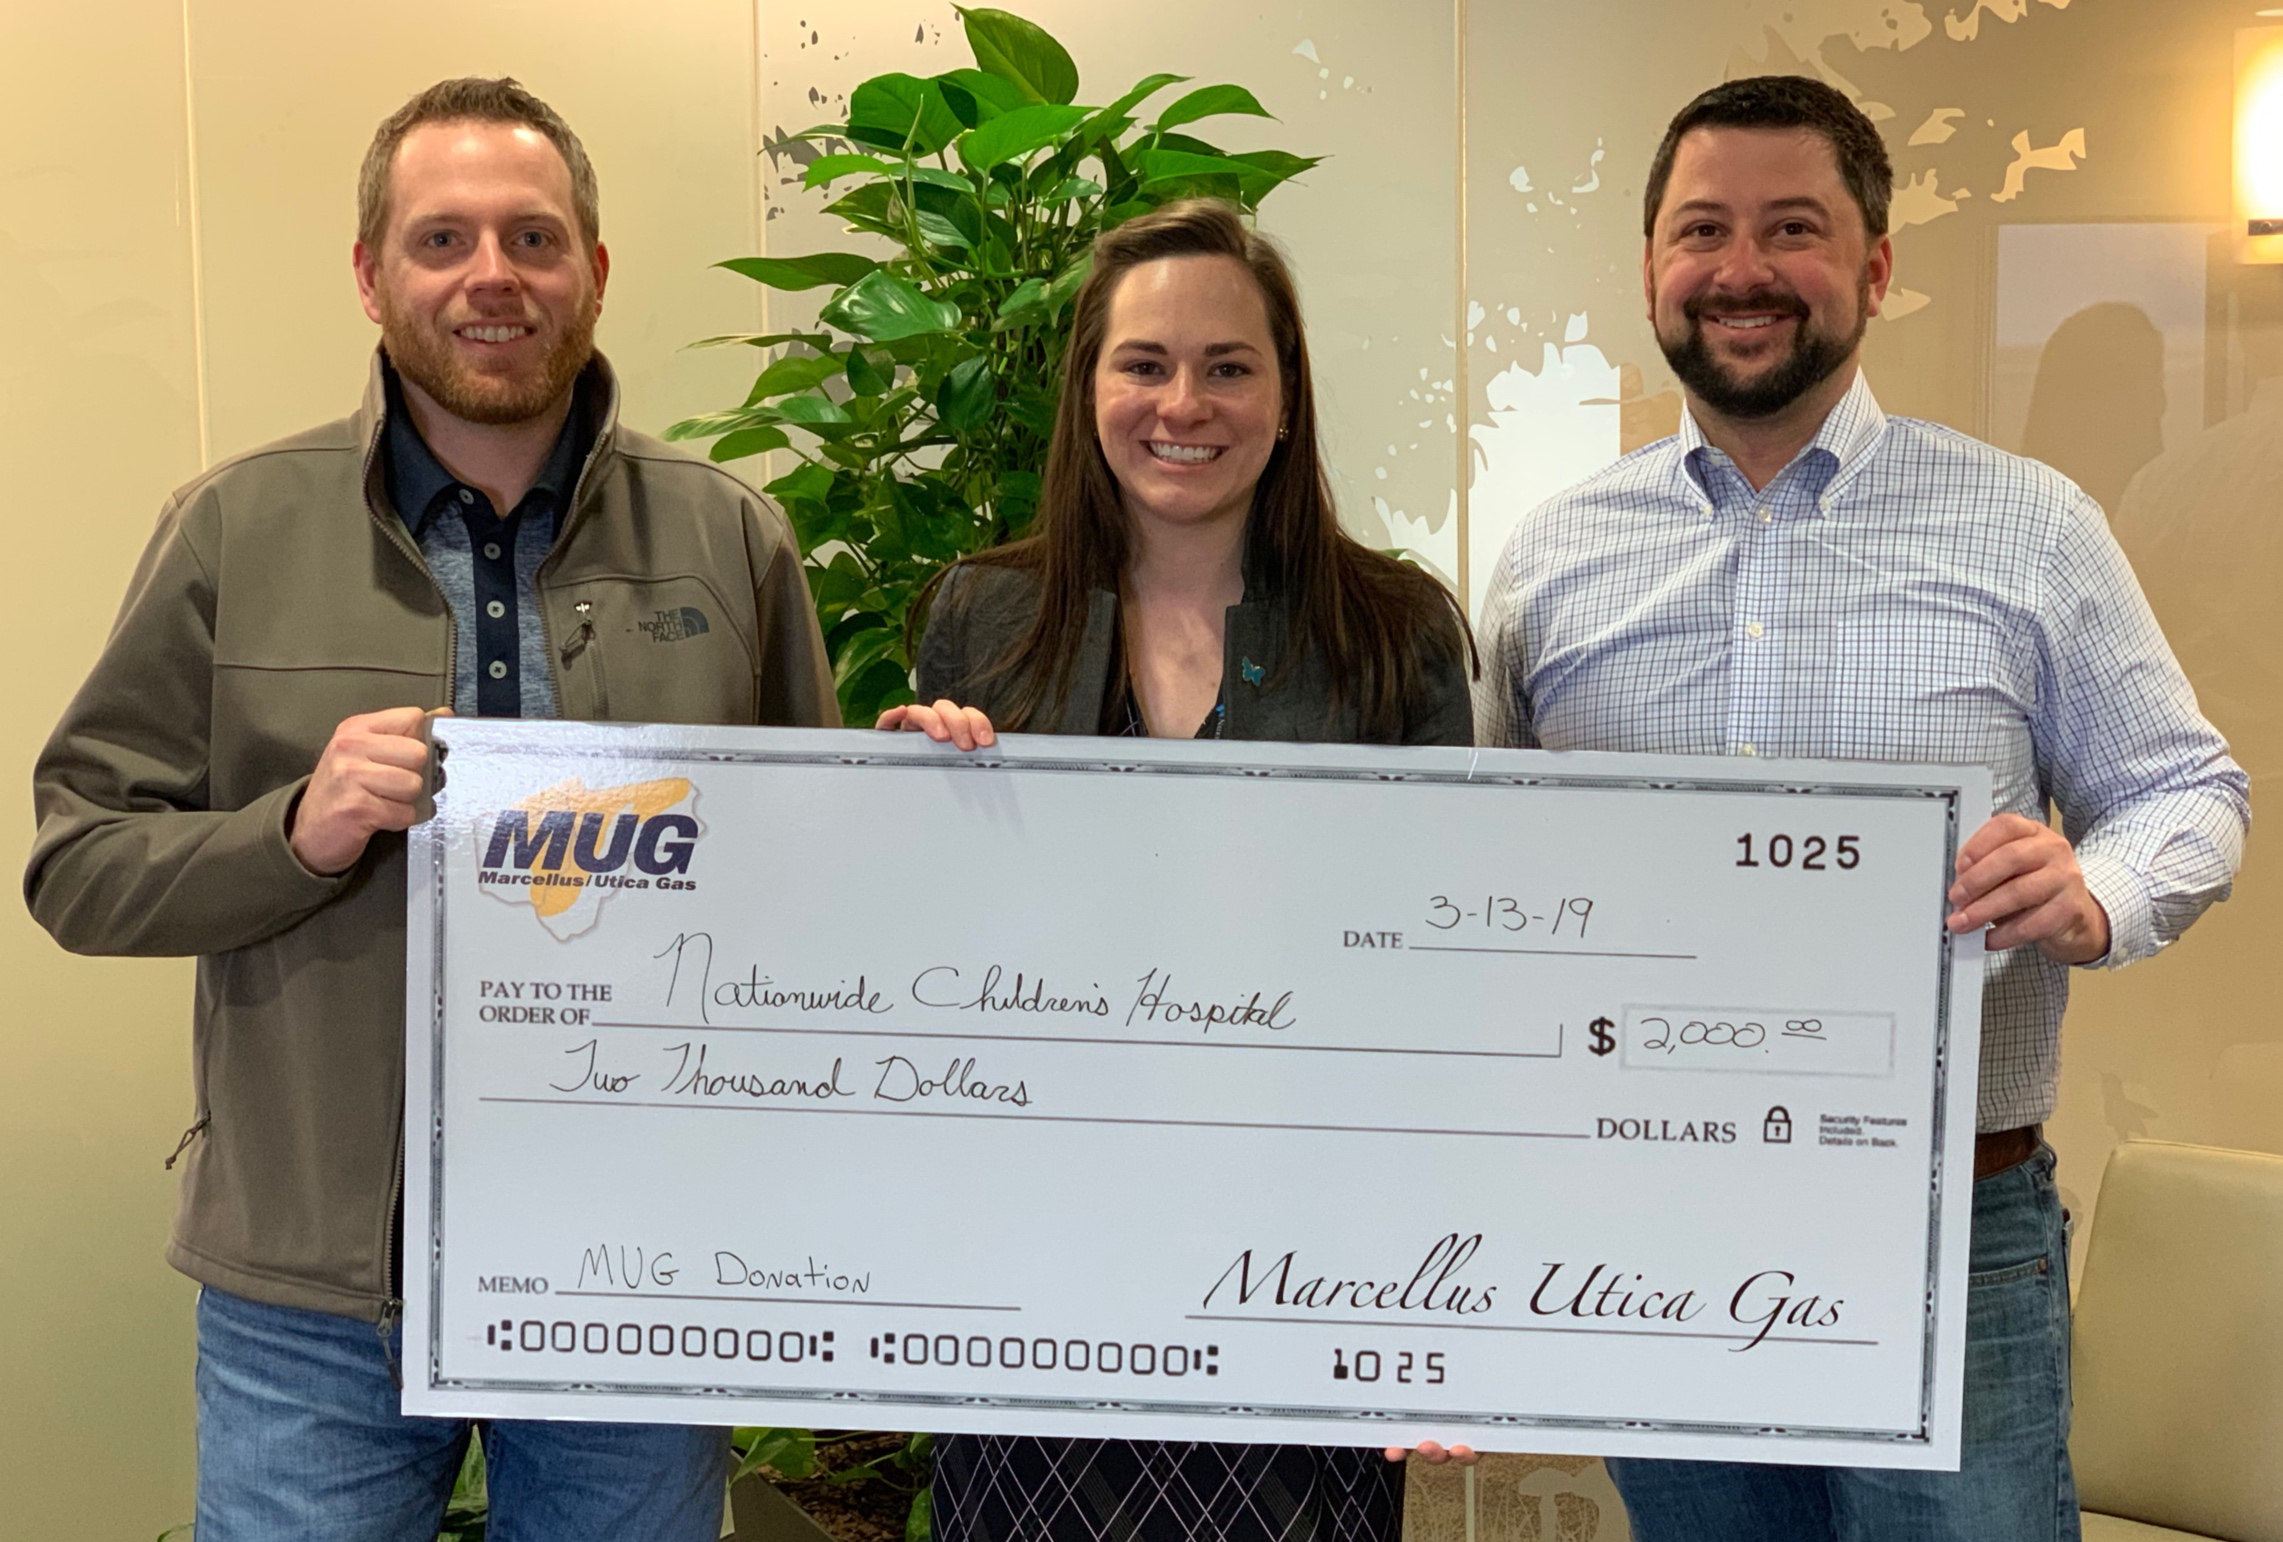 MUG Board Members Chris LaBarte and Zane Johnson present a check to Nationwide Children's Hospital in Columbus, OH.